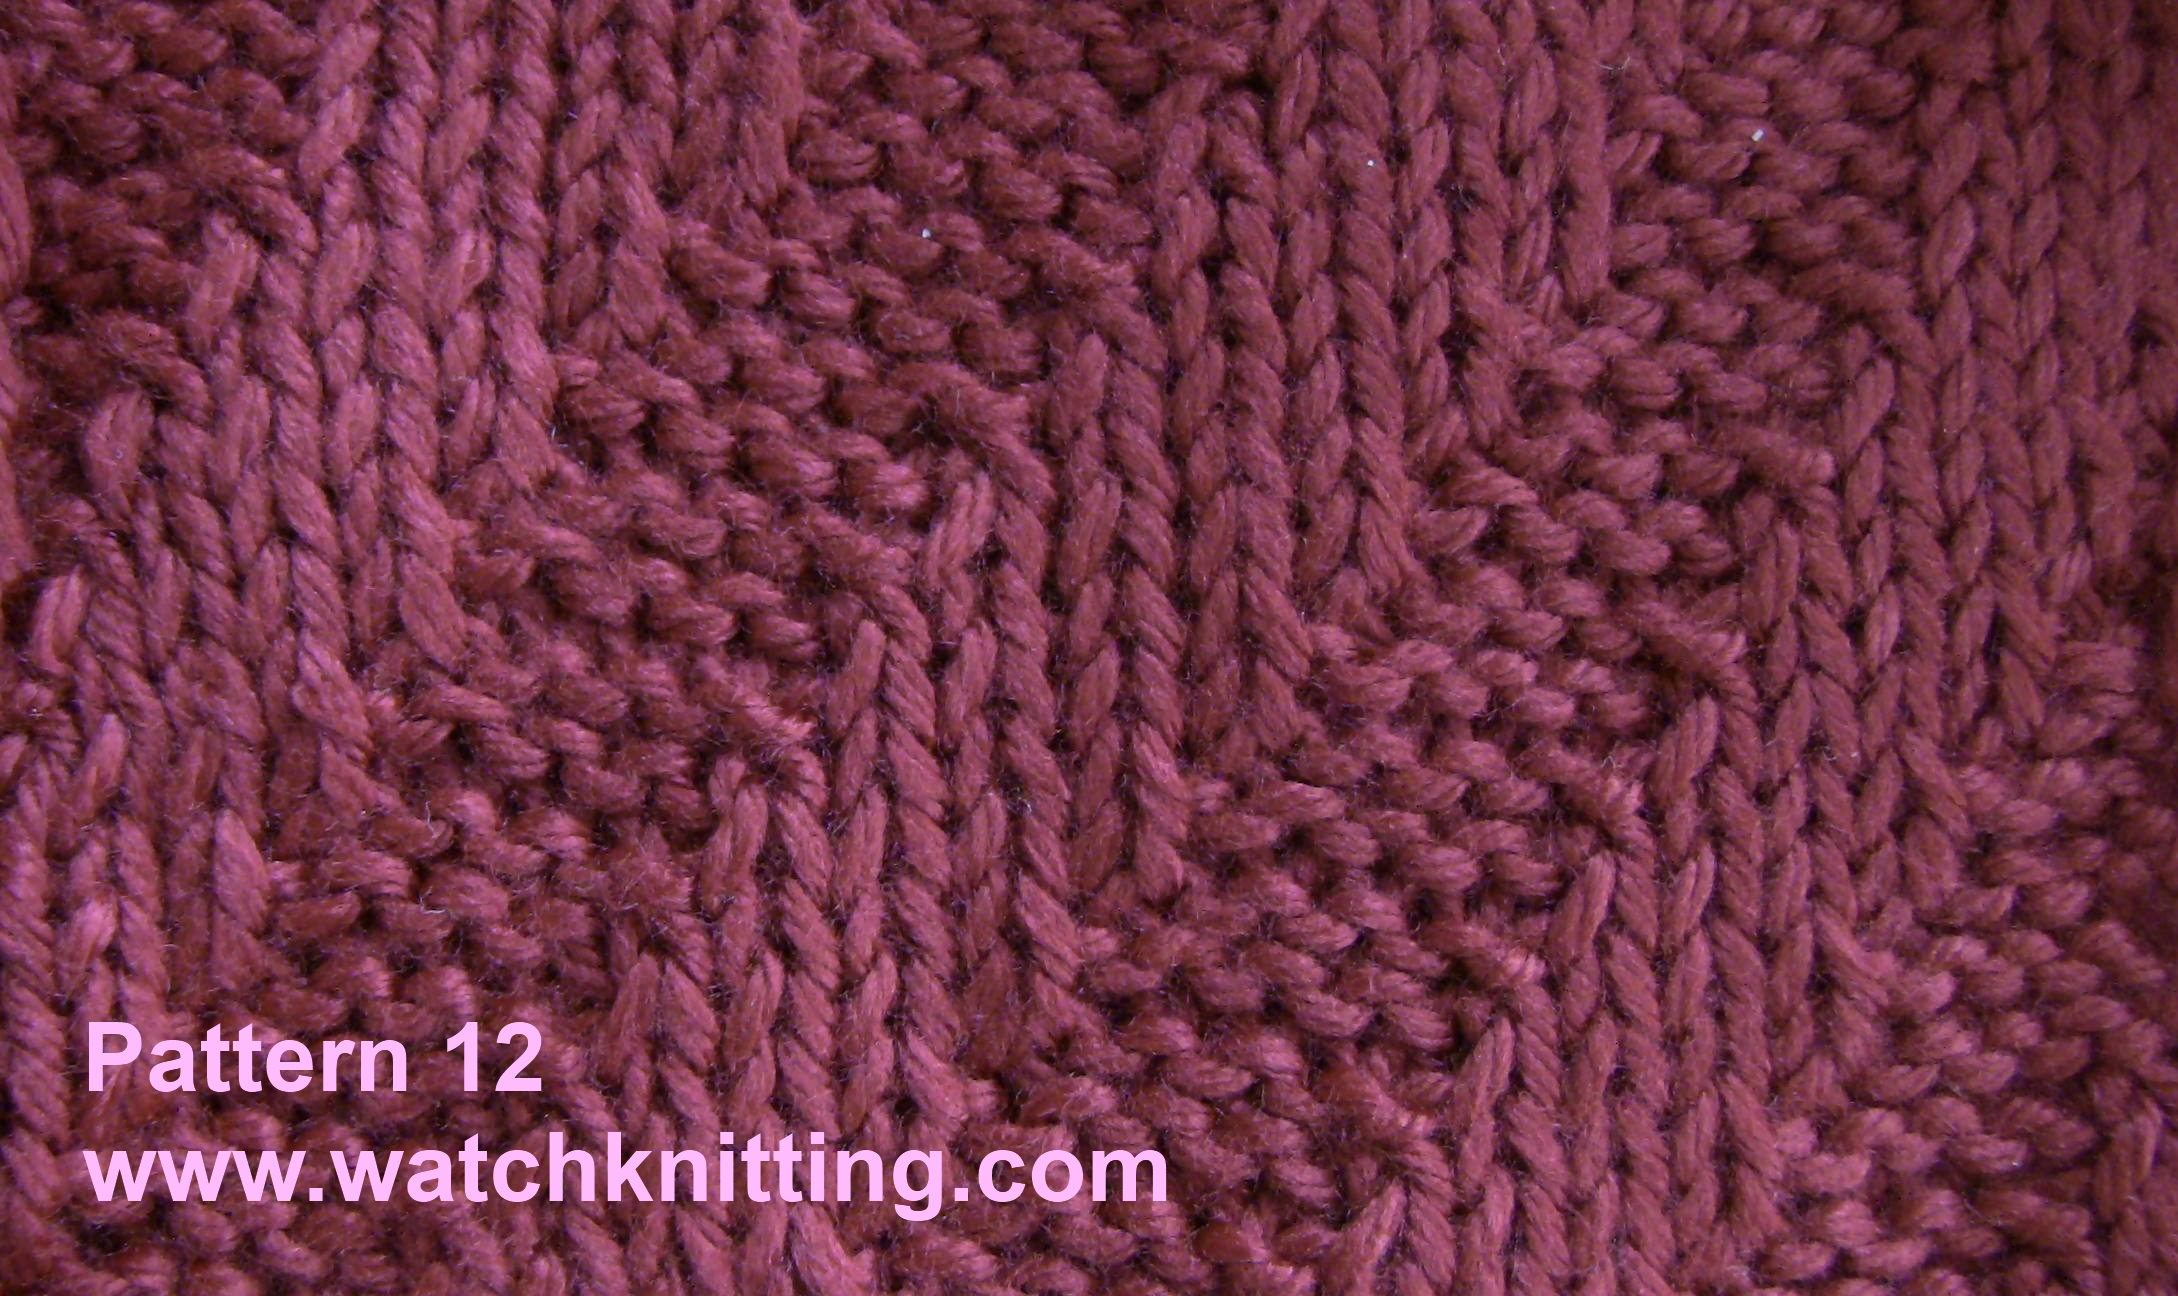 Knitting Models - Pattern 12 (Tilt stripes)